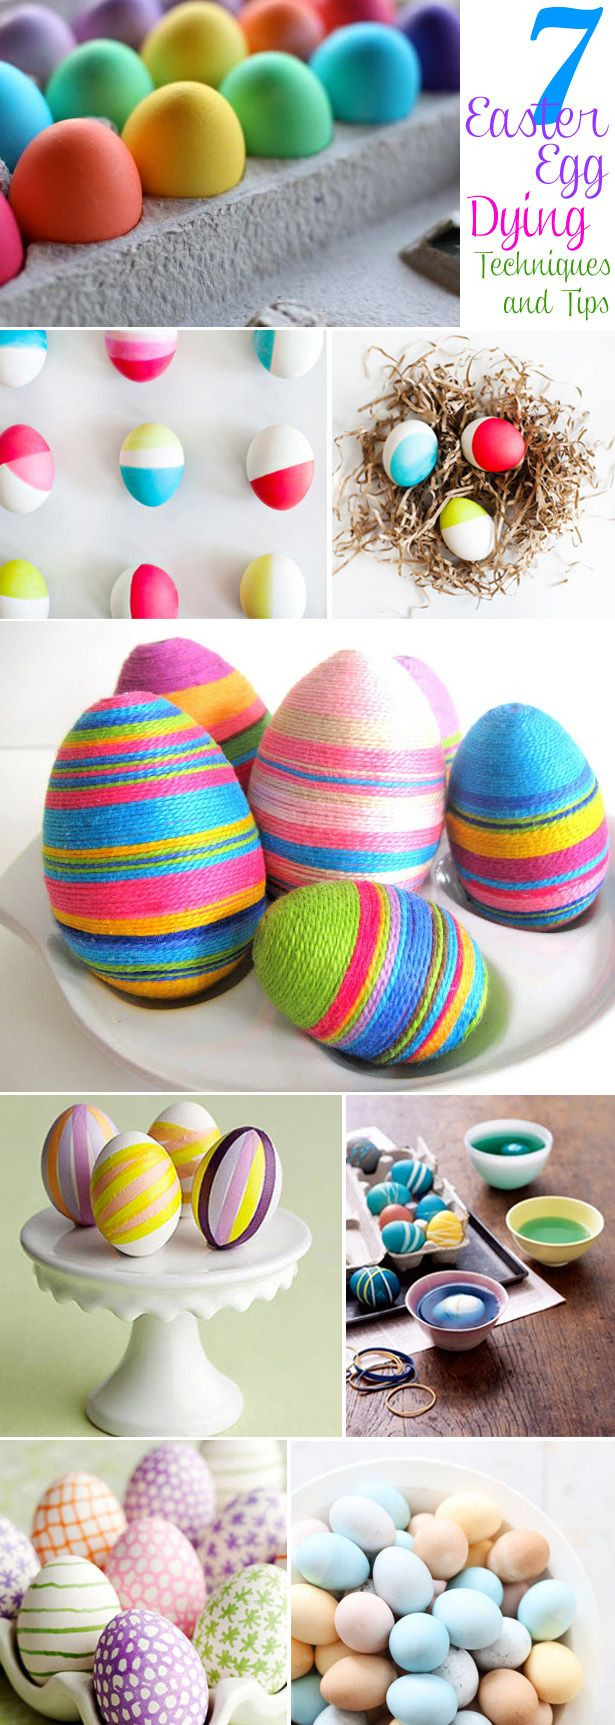 Easter Egg Dying Party Ideas  7 Easter Egg Dyeing Techniques Best Party Ideas